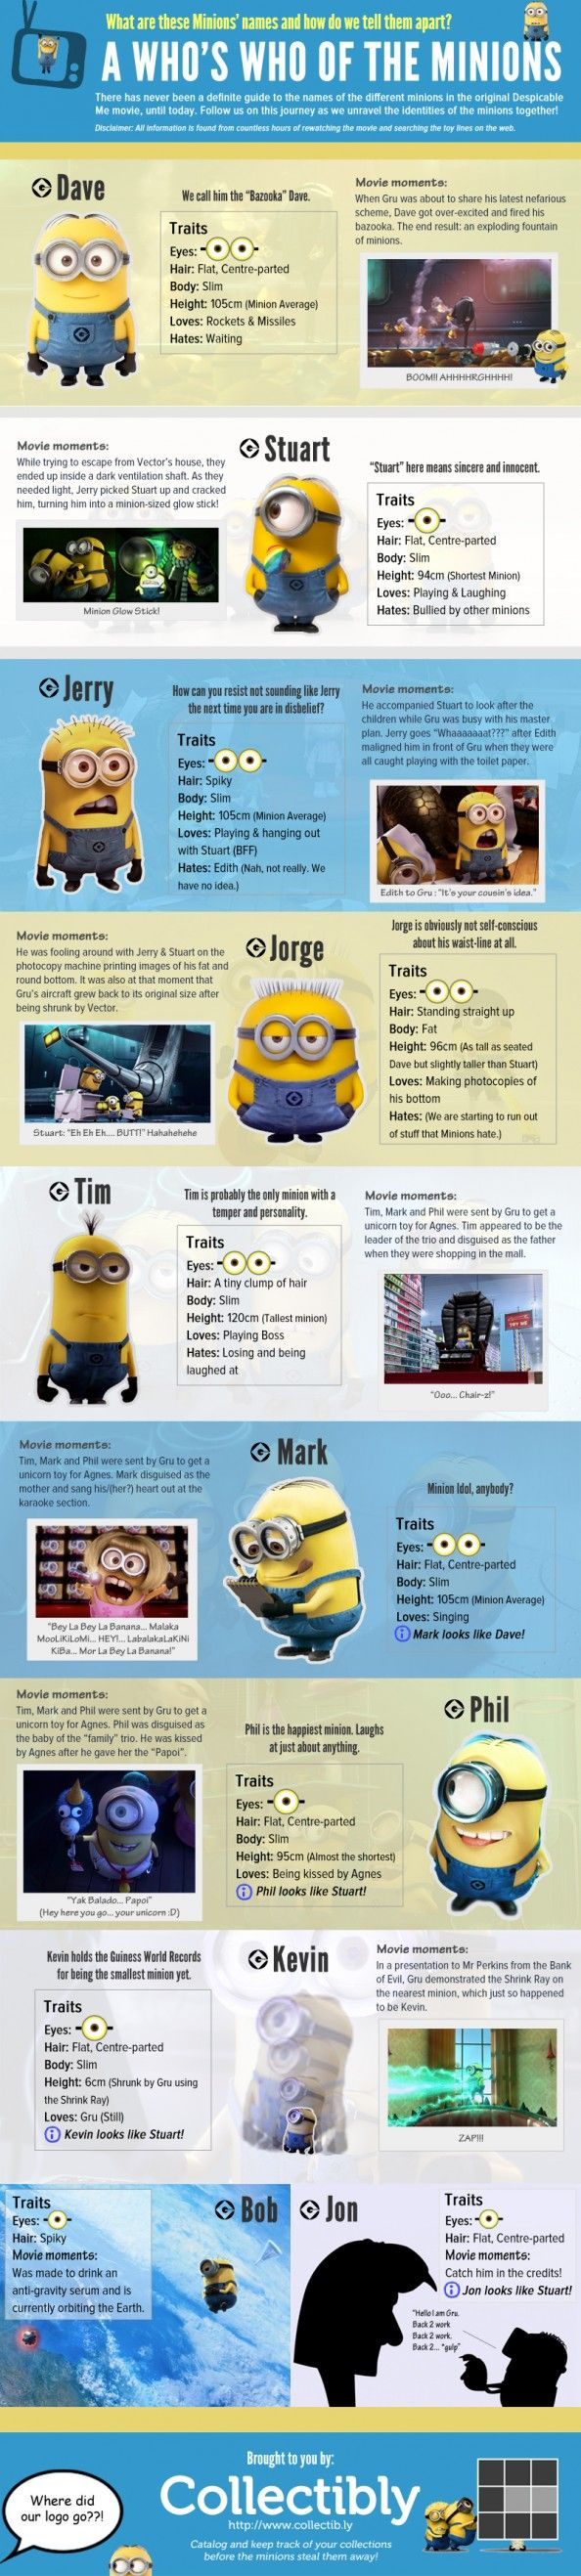 A Who's Who of the minions. You know, the important stuff...